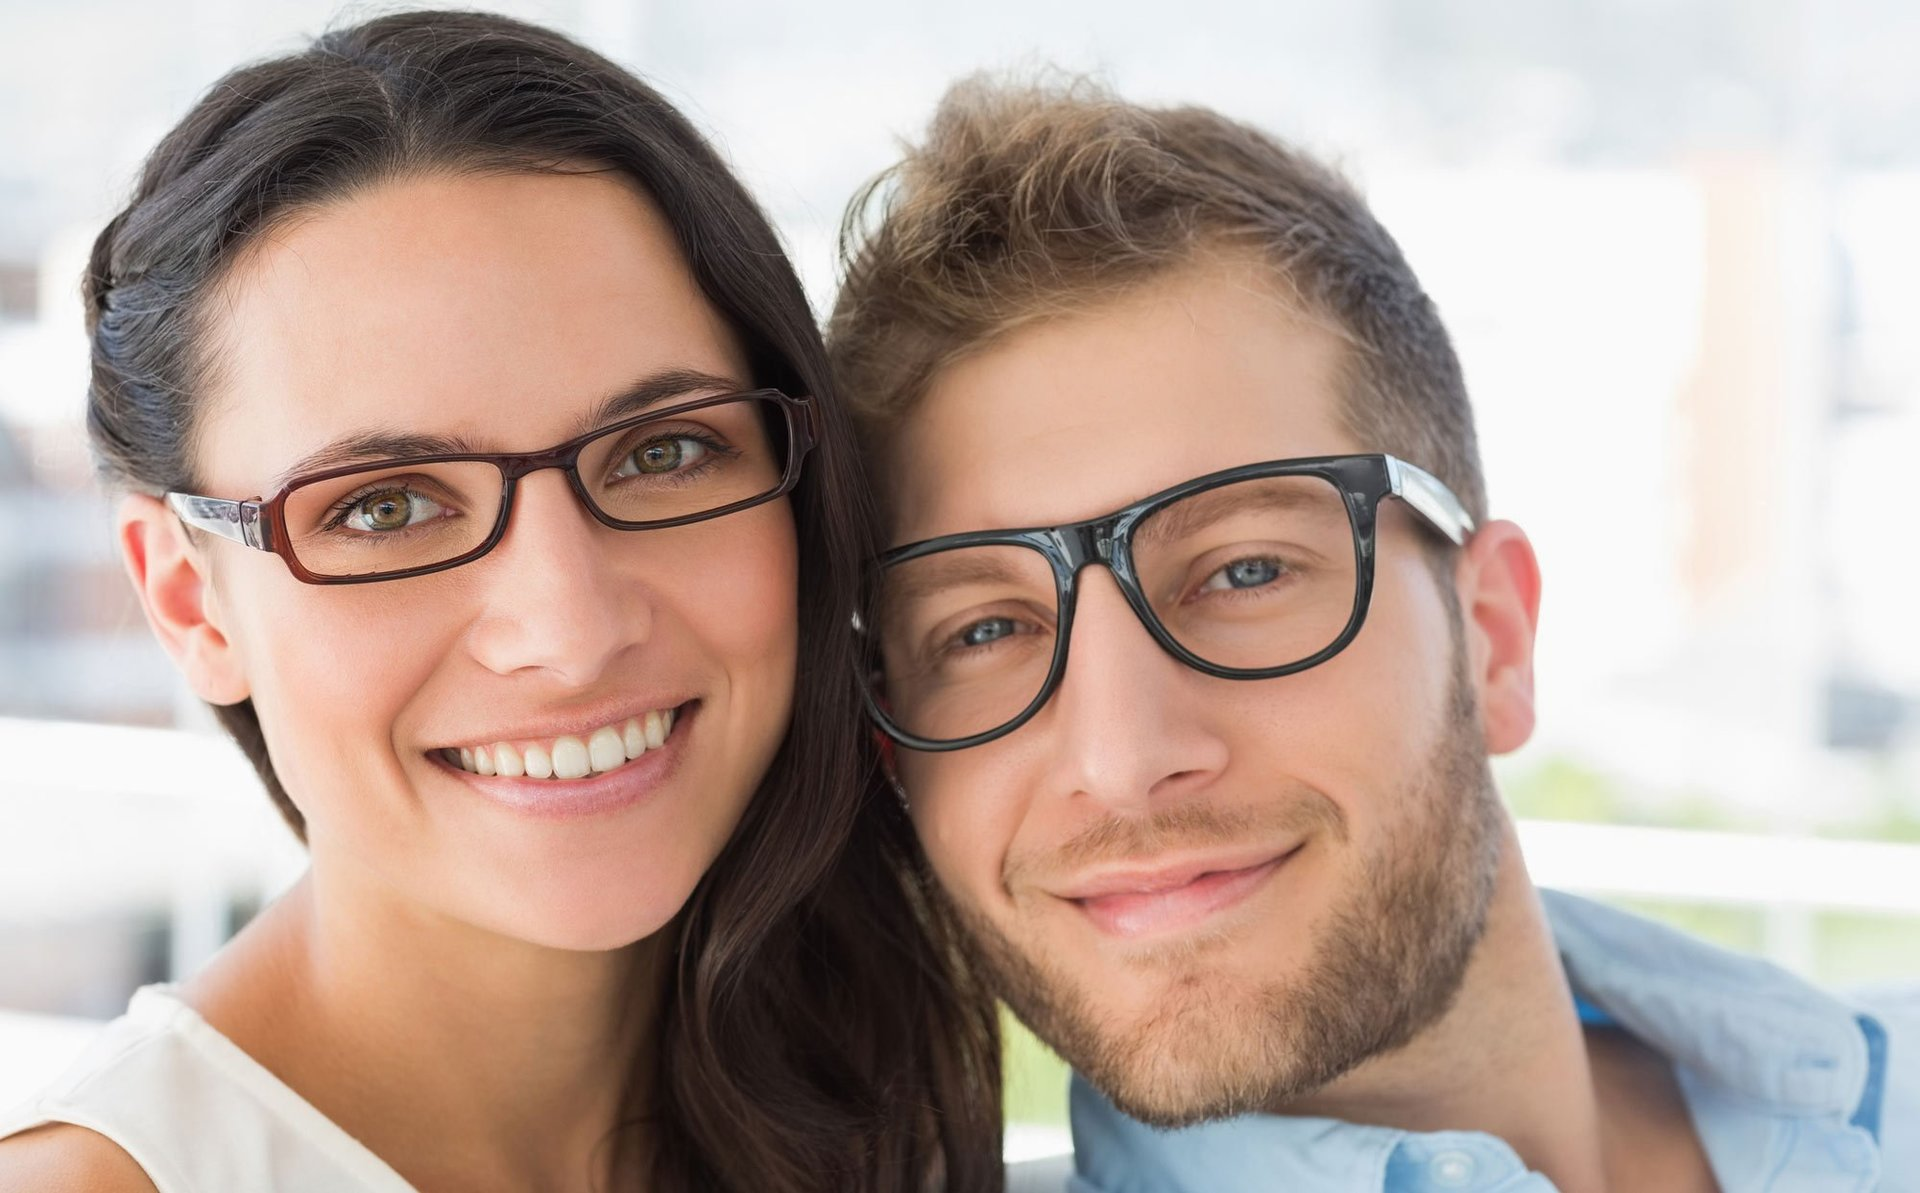 women and man faces with black glasses